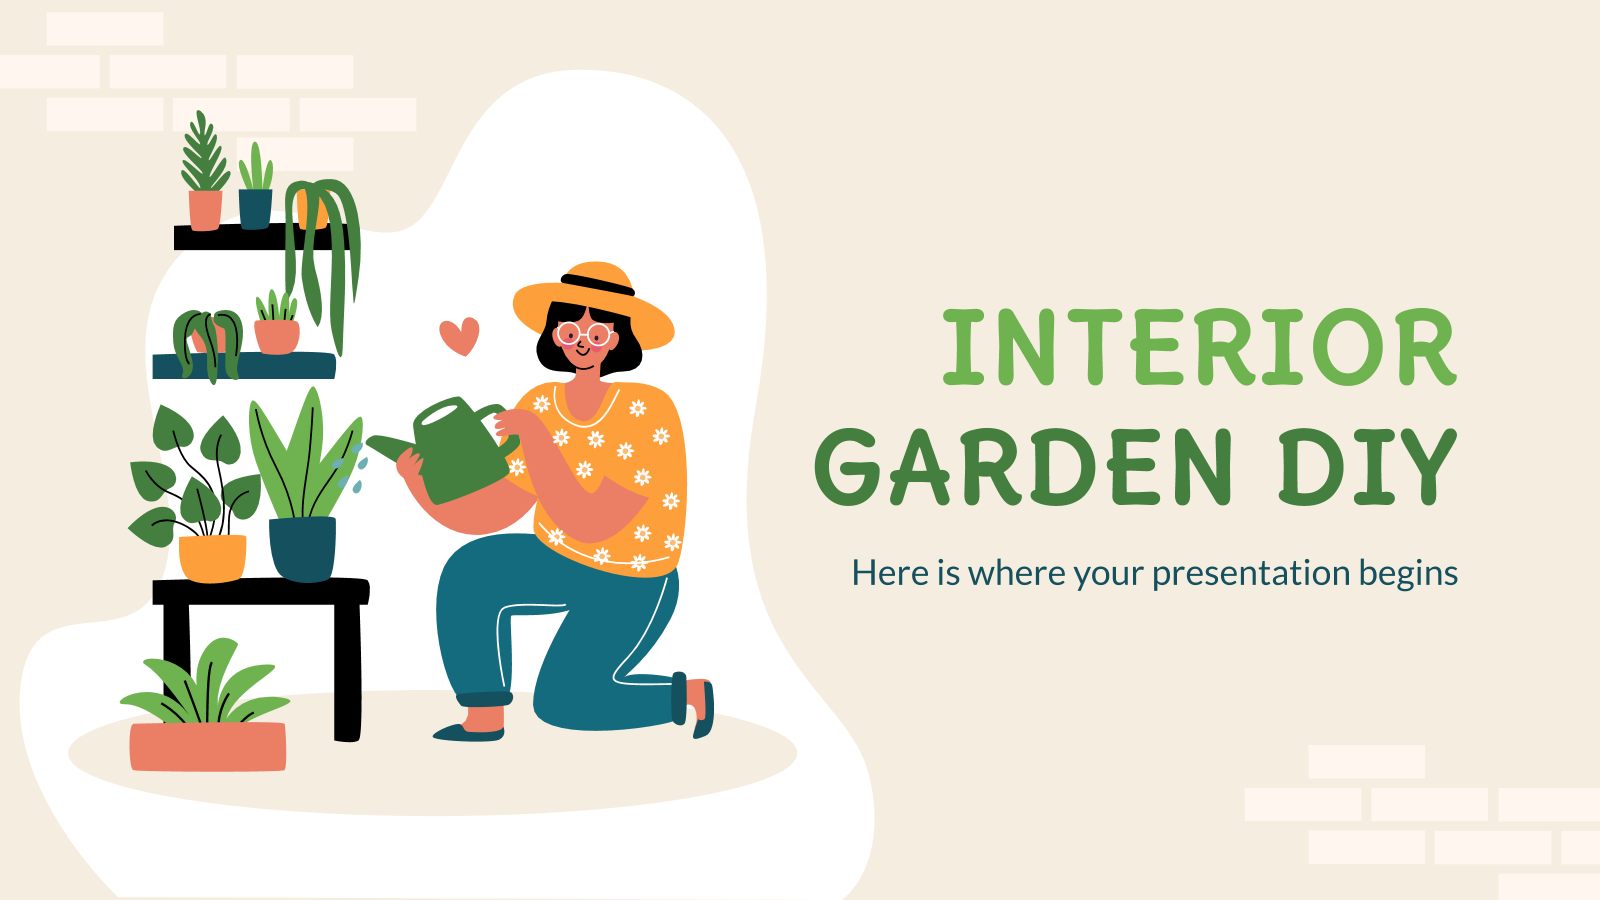 Interior Garden DIY presentation template